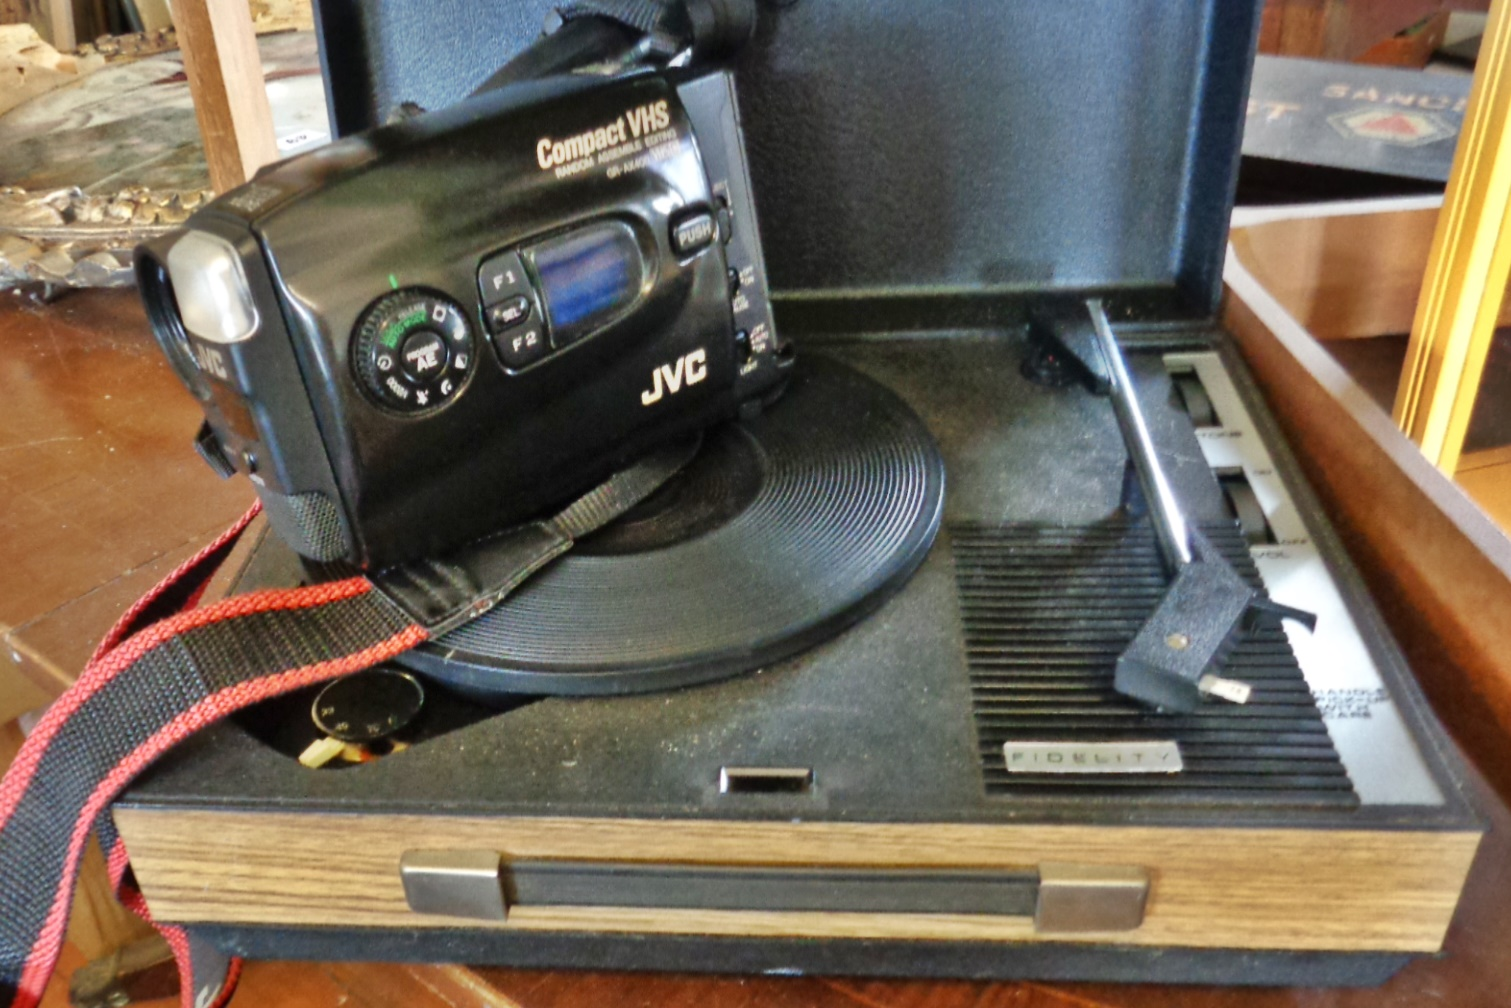 Lot 50 - JVC Compact VHS GR-AX400 video camera and a vintage Fidelity record player or turntable in case